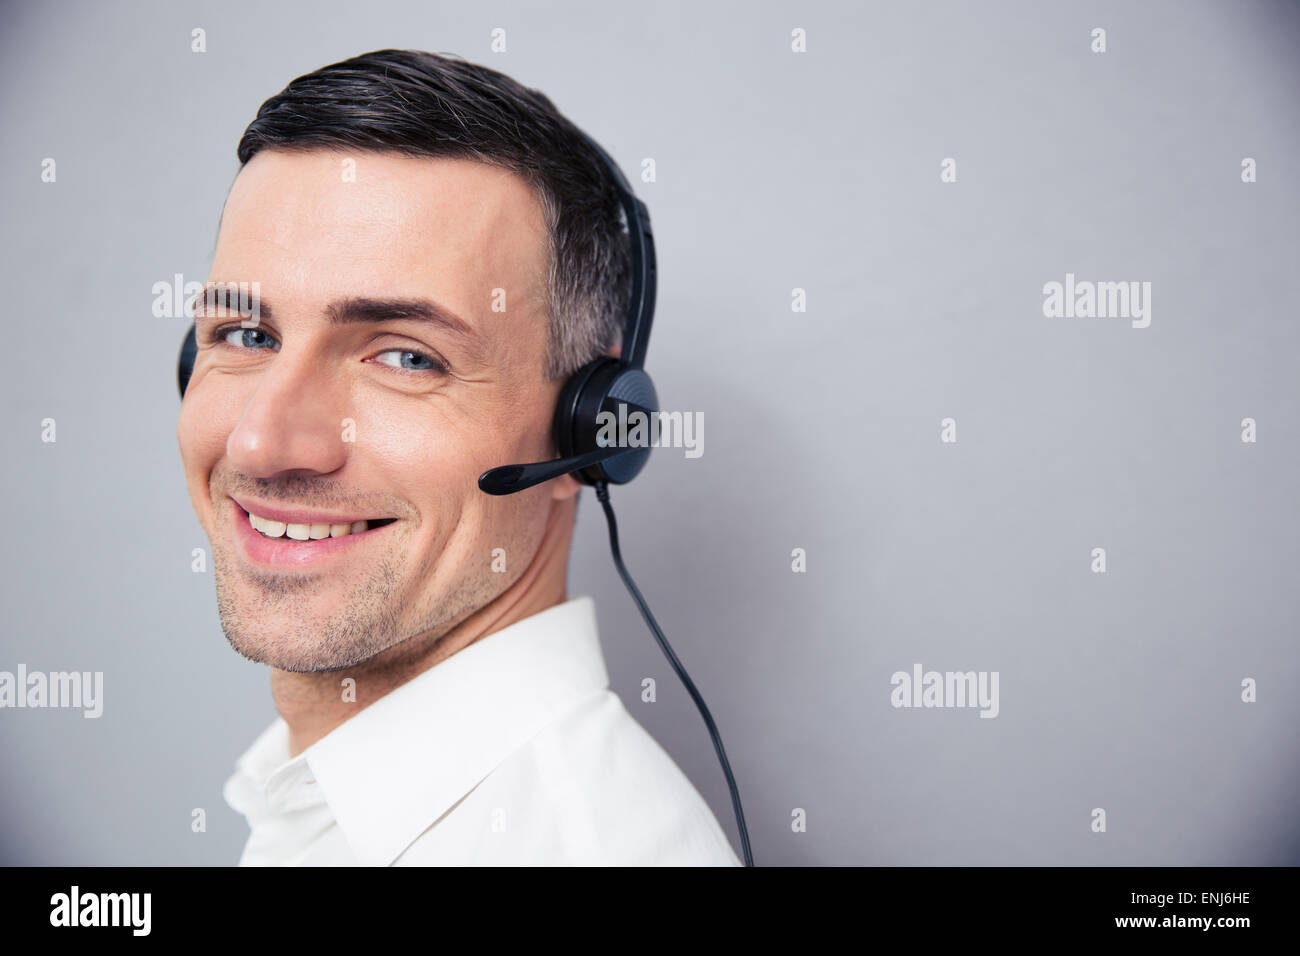 Cheerful businessman in headphones debout sur gray backgorund et looking at camera Banque D'Images